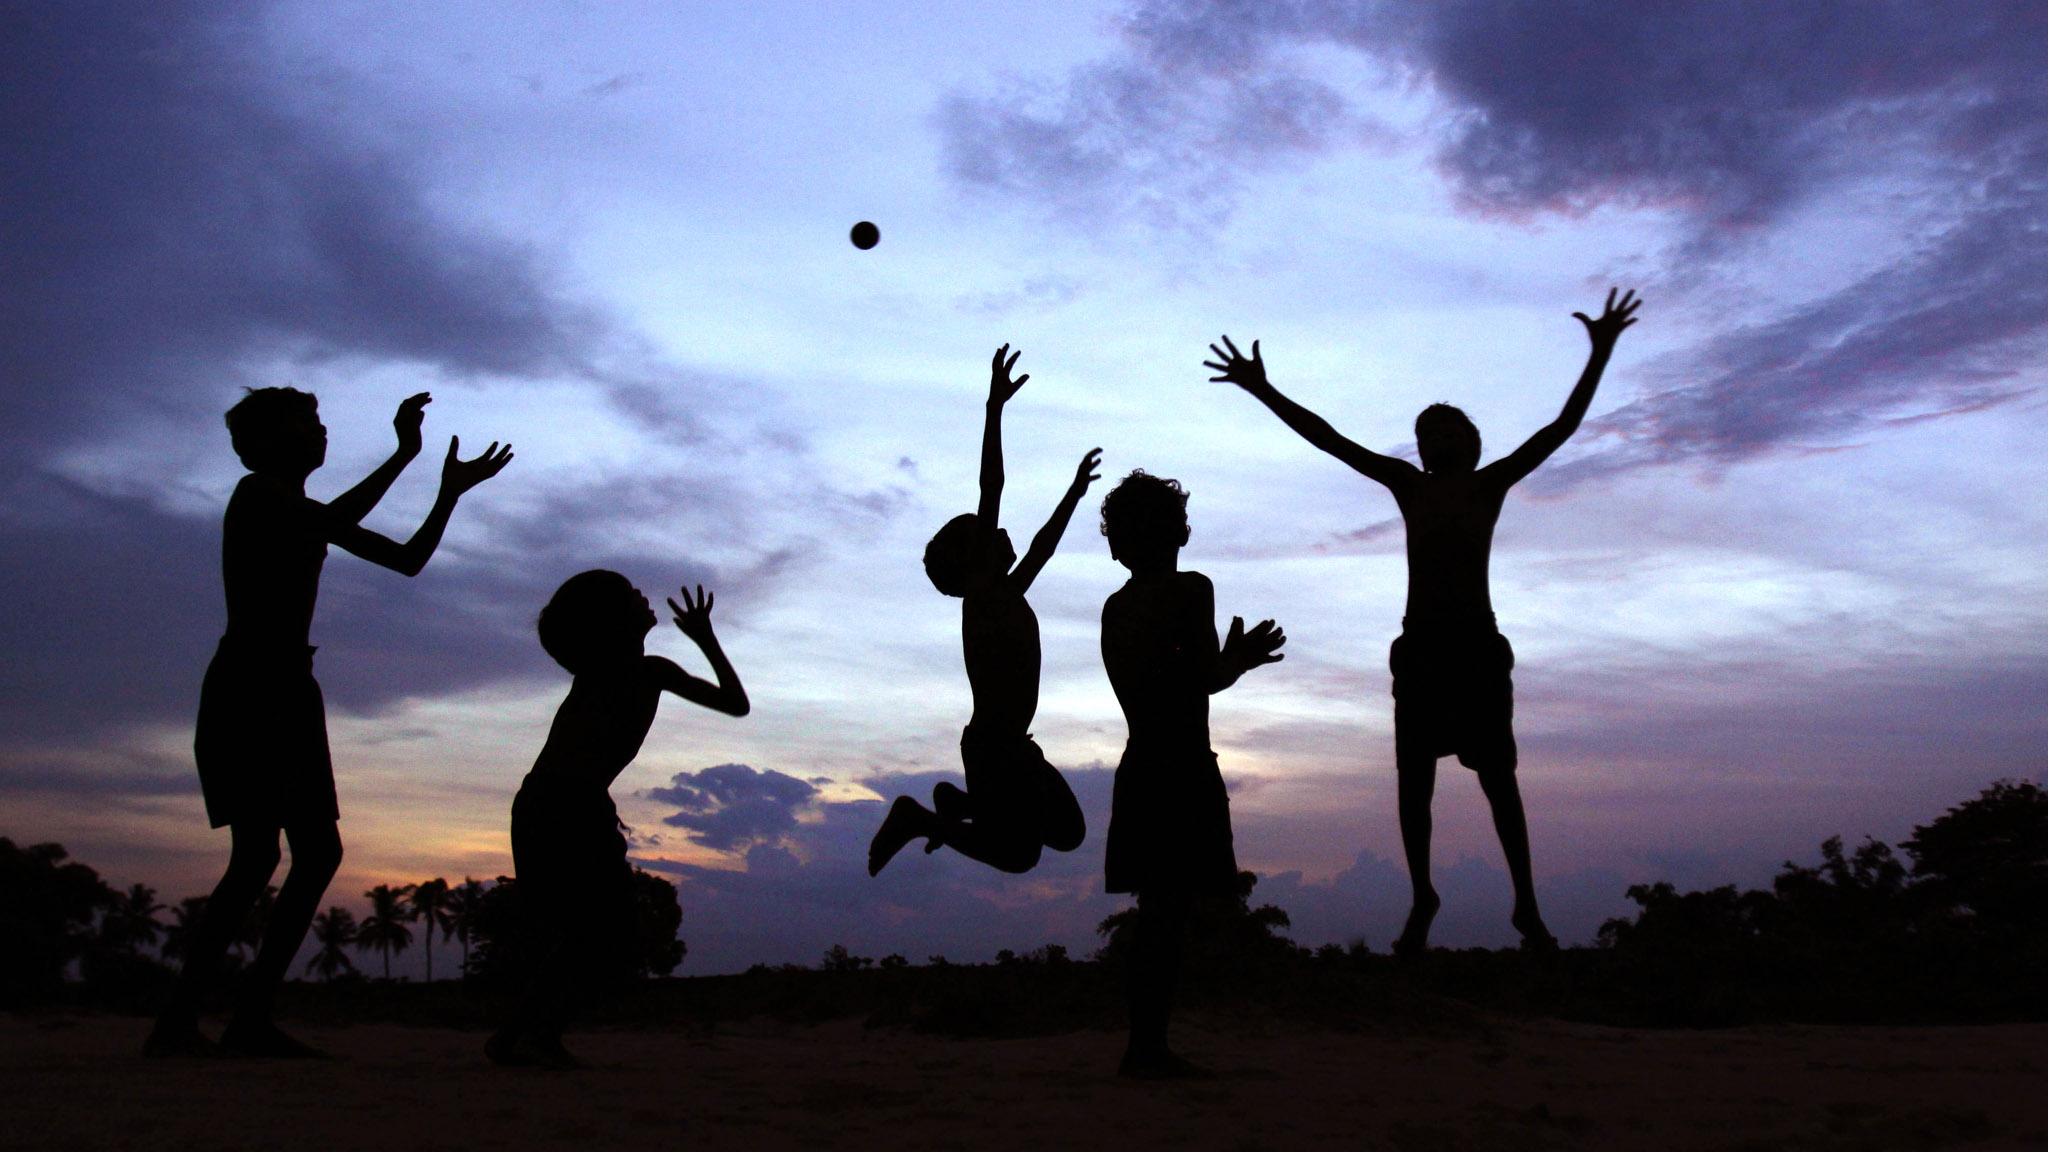 youth sport participation beneficial or destructive The wide-ranging benefits of healthy youth sports participation are well- recognized,  in these scenarios, it would not likely be beneficial or benign to  go from one dysfunctional  demise of the fittest: are we destroying our biggest  talents.